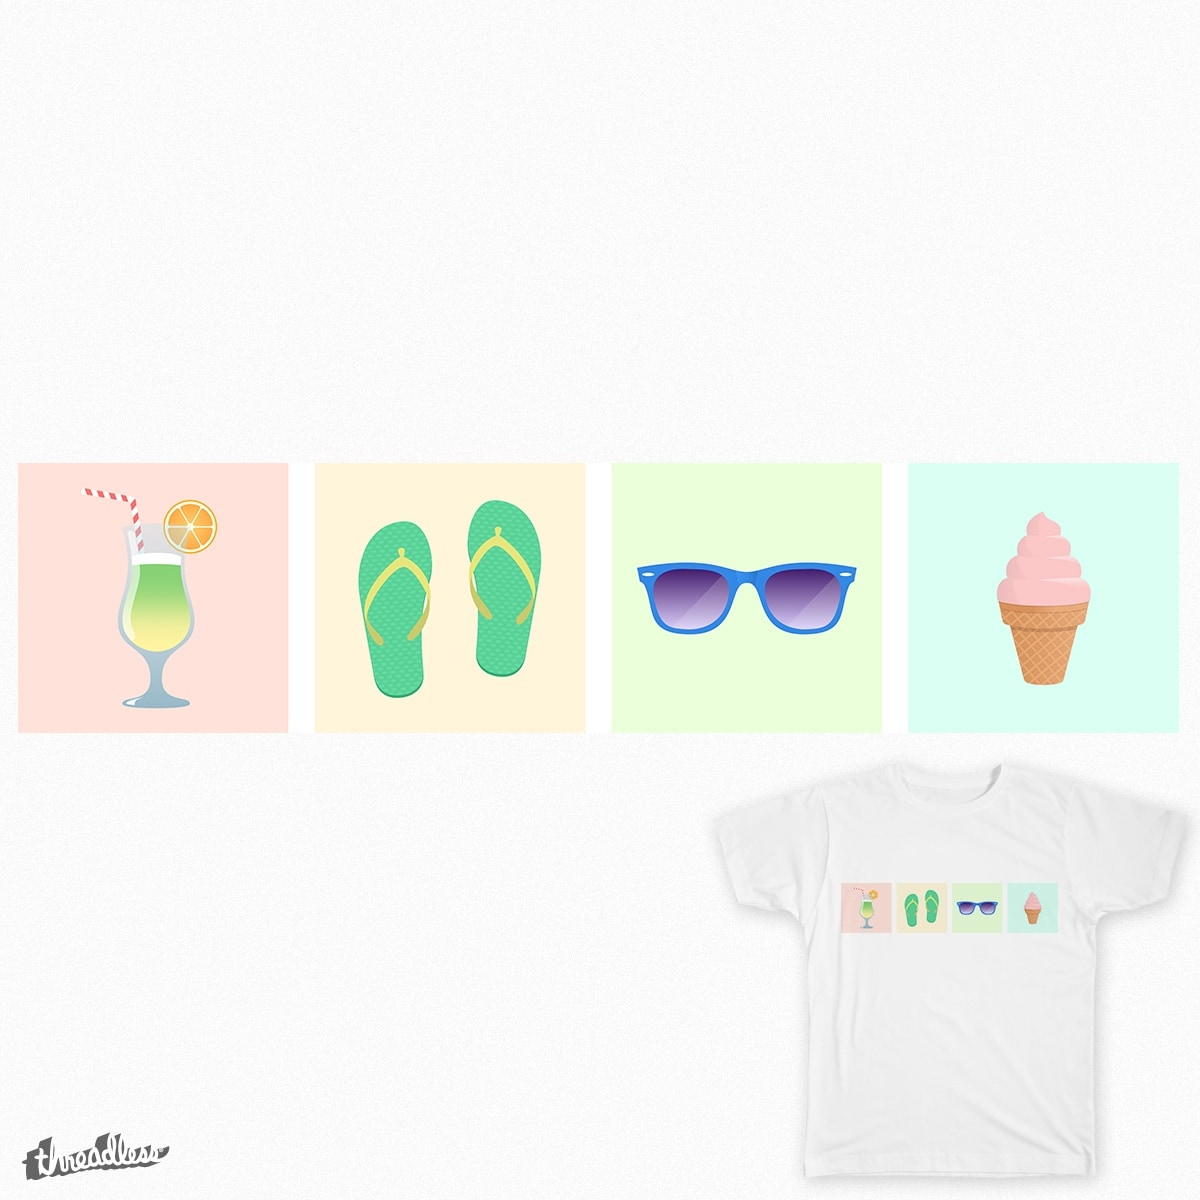 just summertime by francesco.scalambrino.7 on Threadless